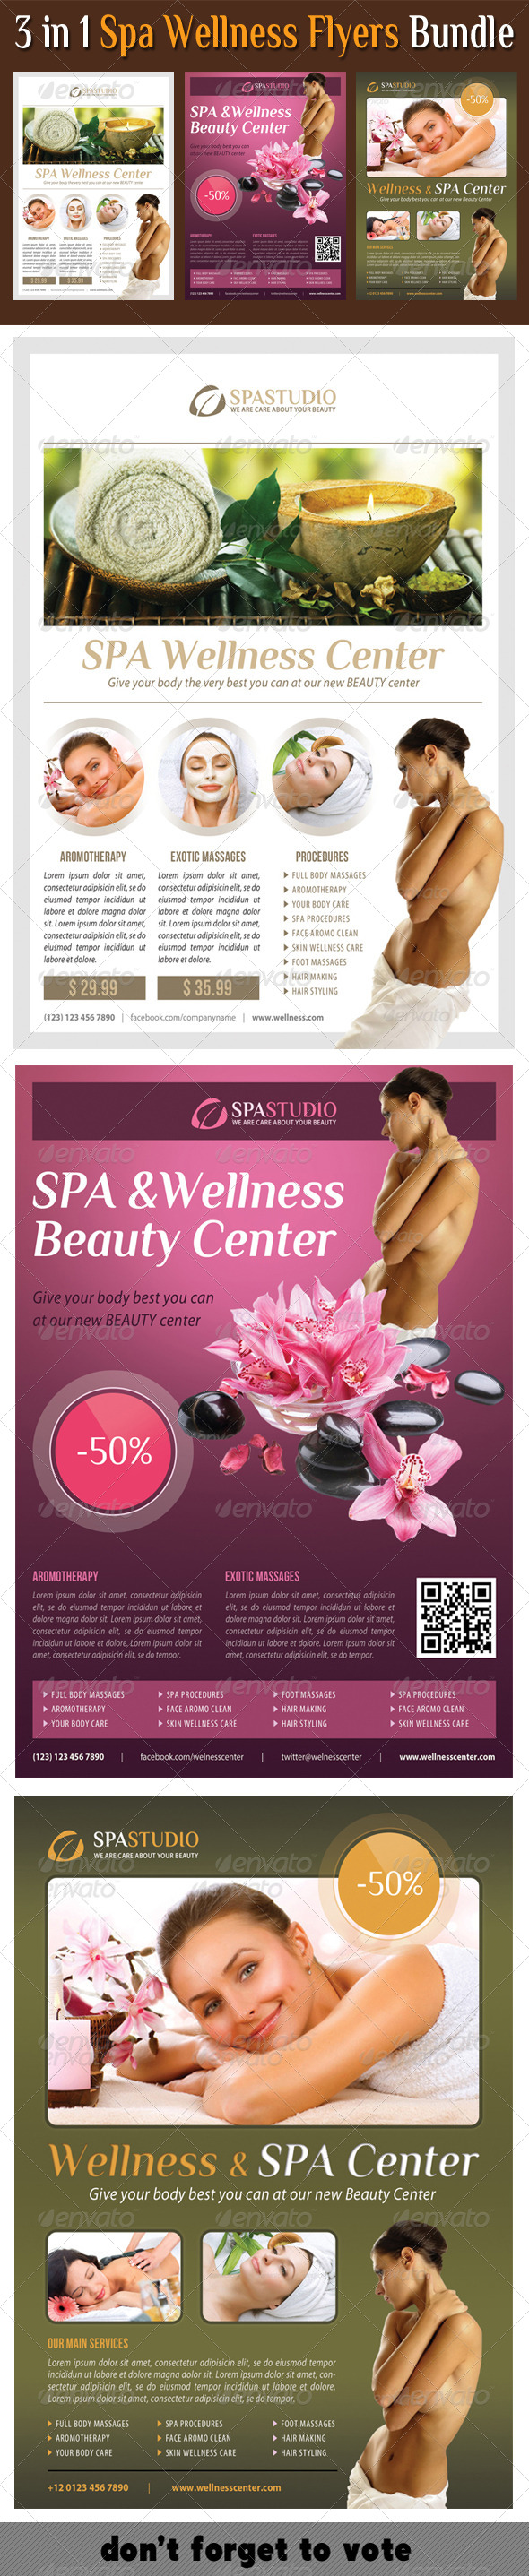 GraphicRiver 3 in 1 Spa Wellness Flyers Bundle 08 8230972